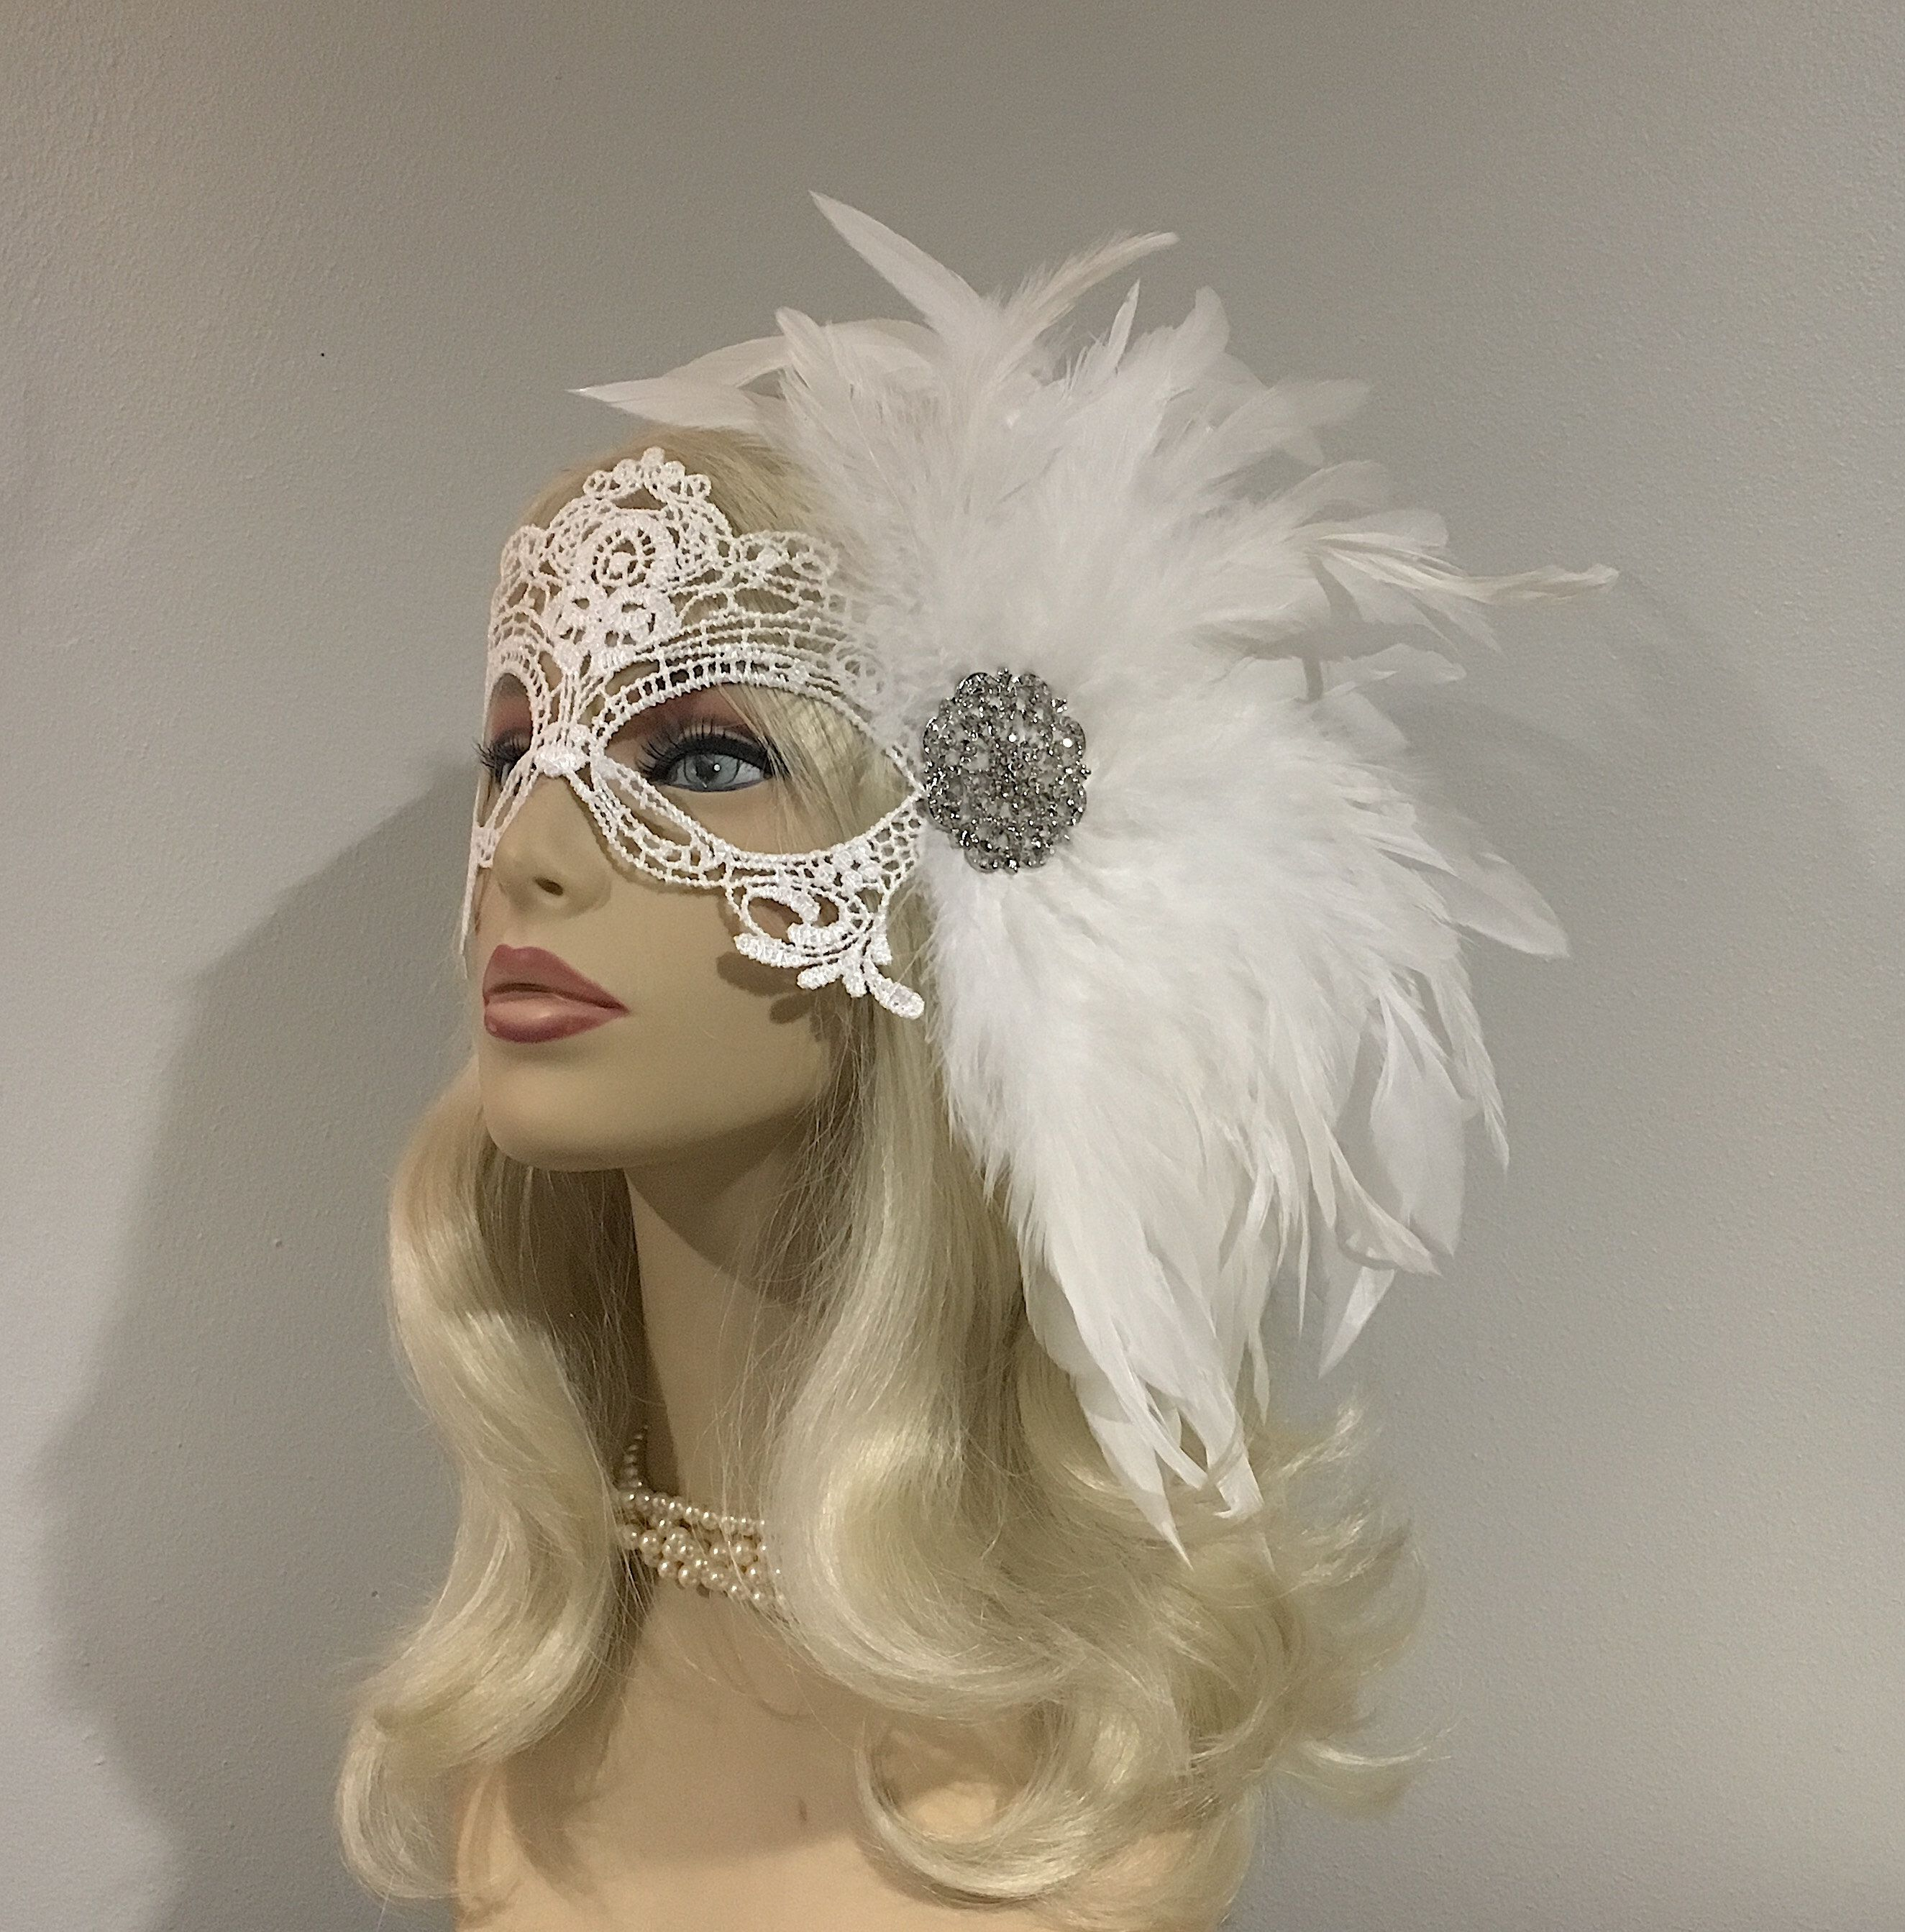 White Lace Masquerade Mask With Feathers Diner En Blanc Etsy Lace Masquerade Masks Lace Mask Masquerade Mask